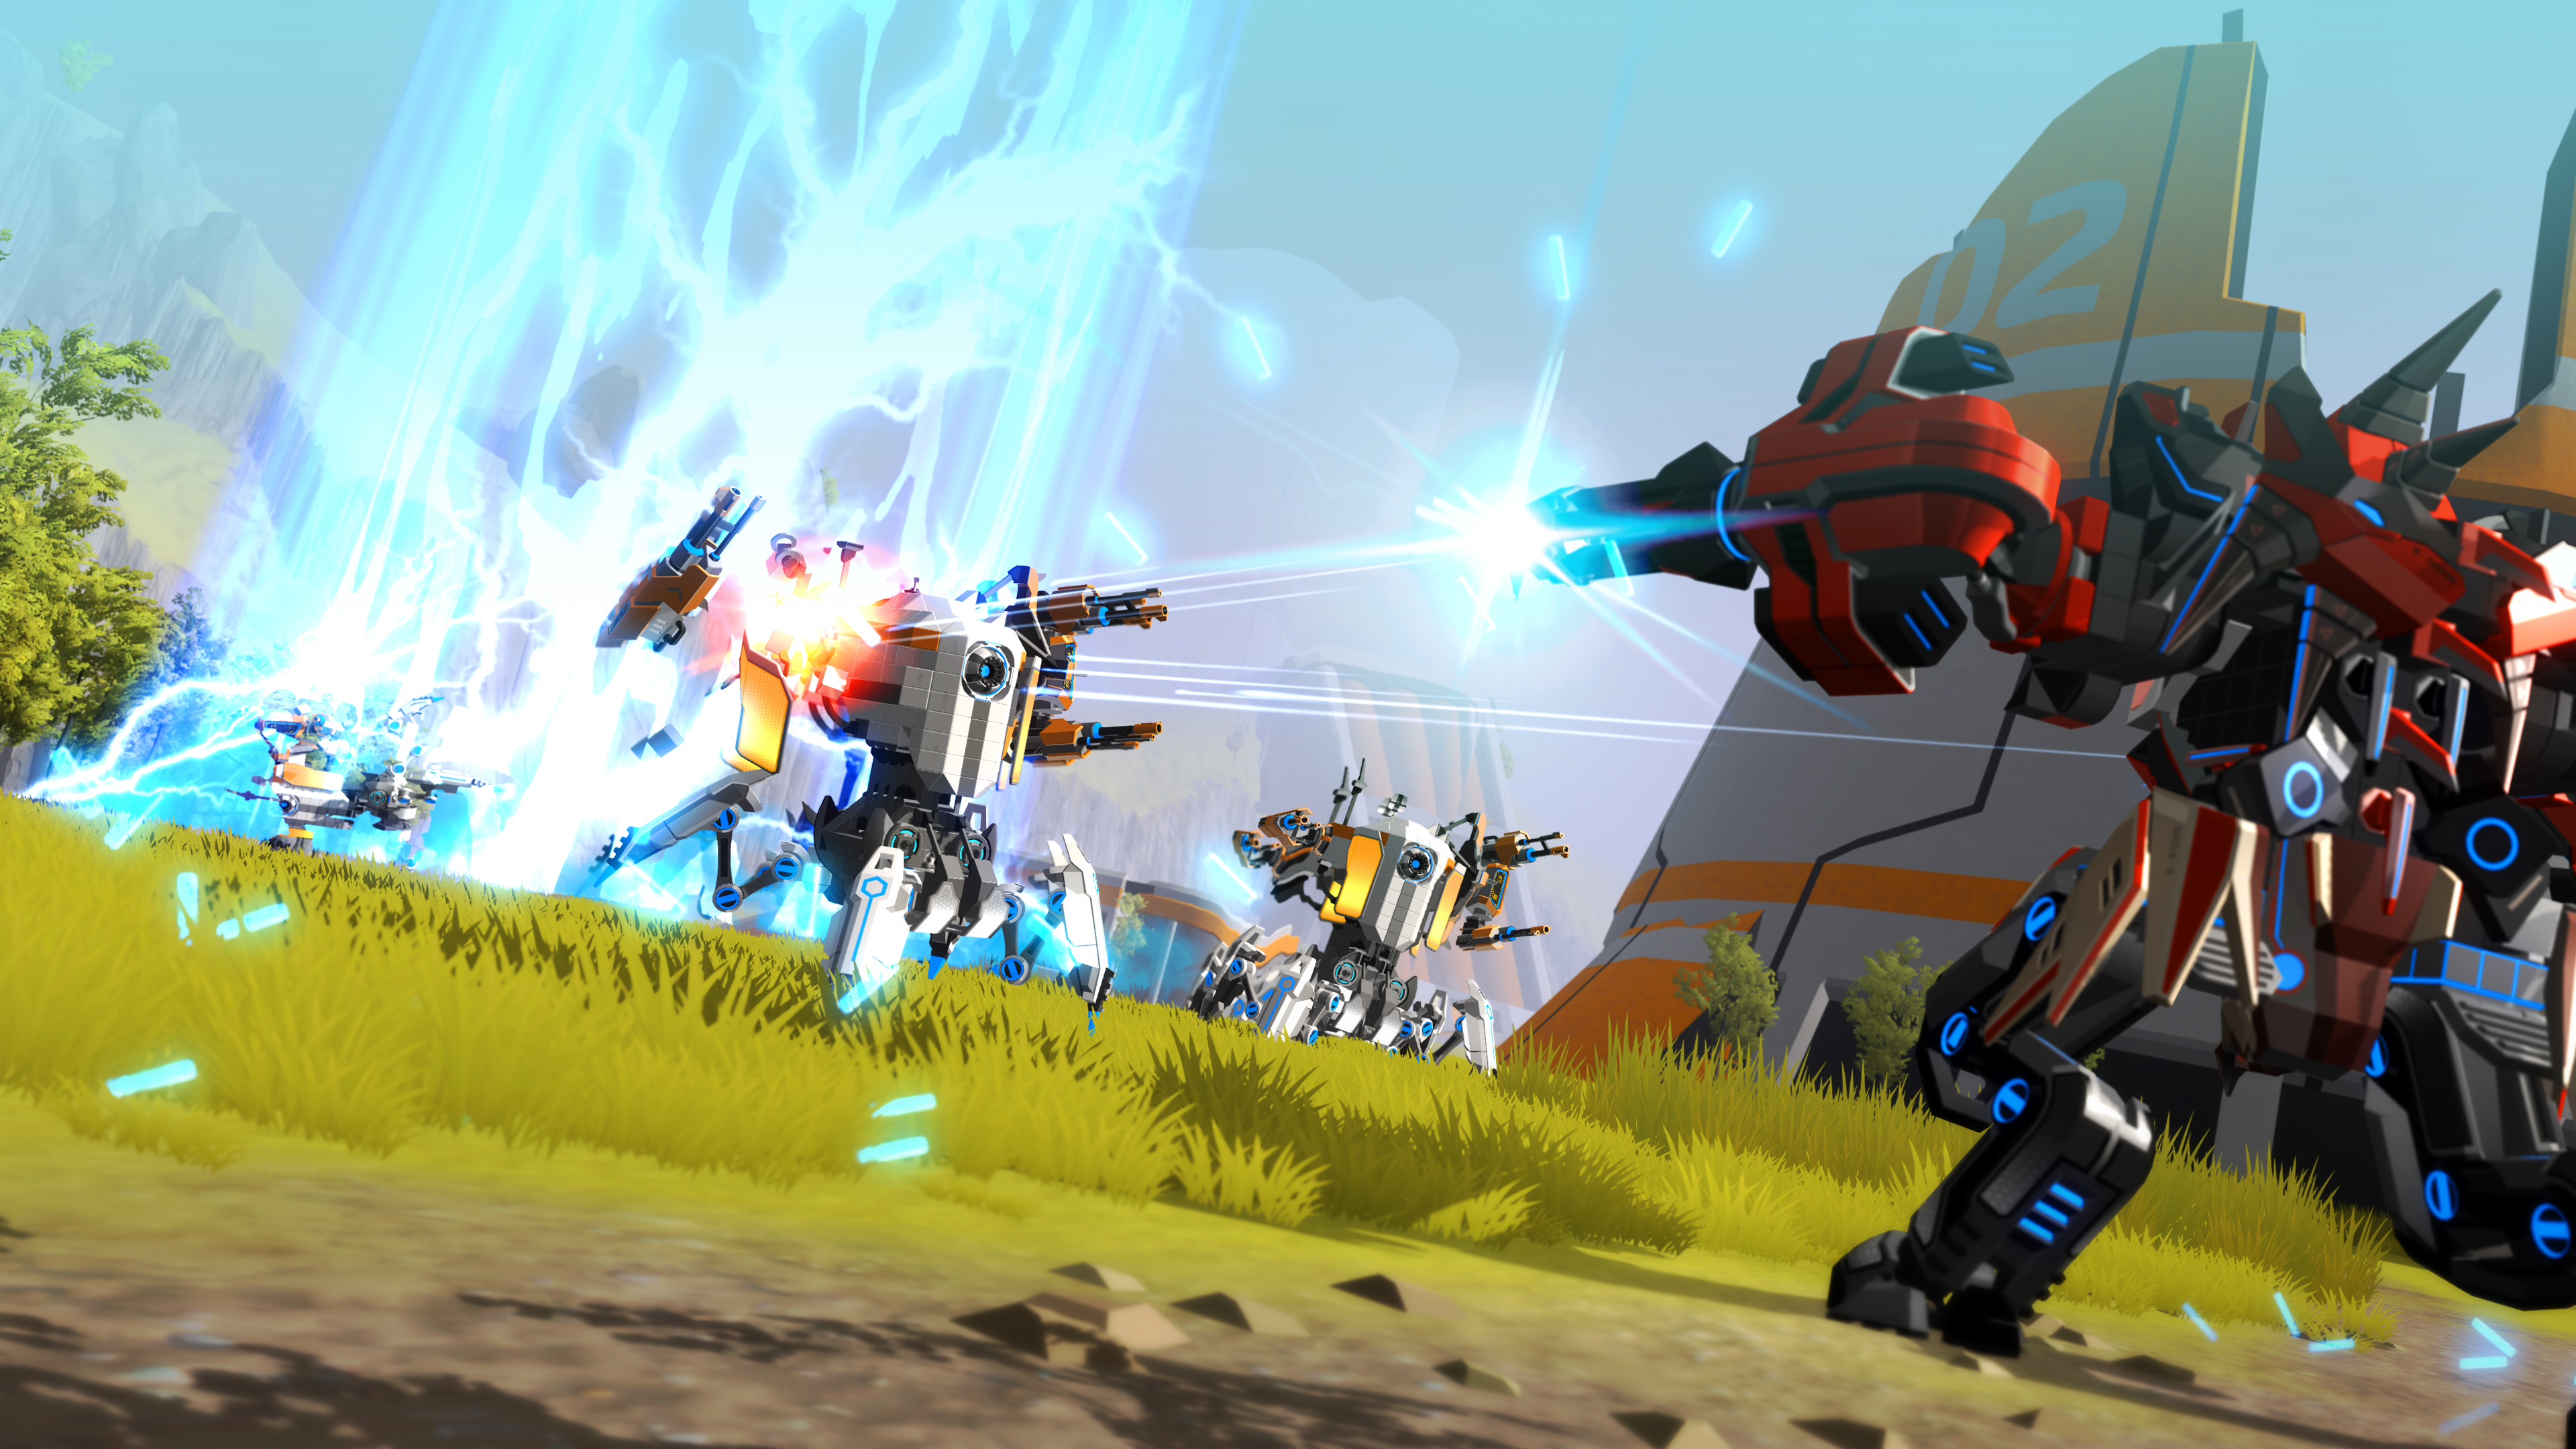 Robocraft Goes Into the Shredzone